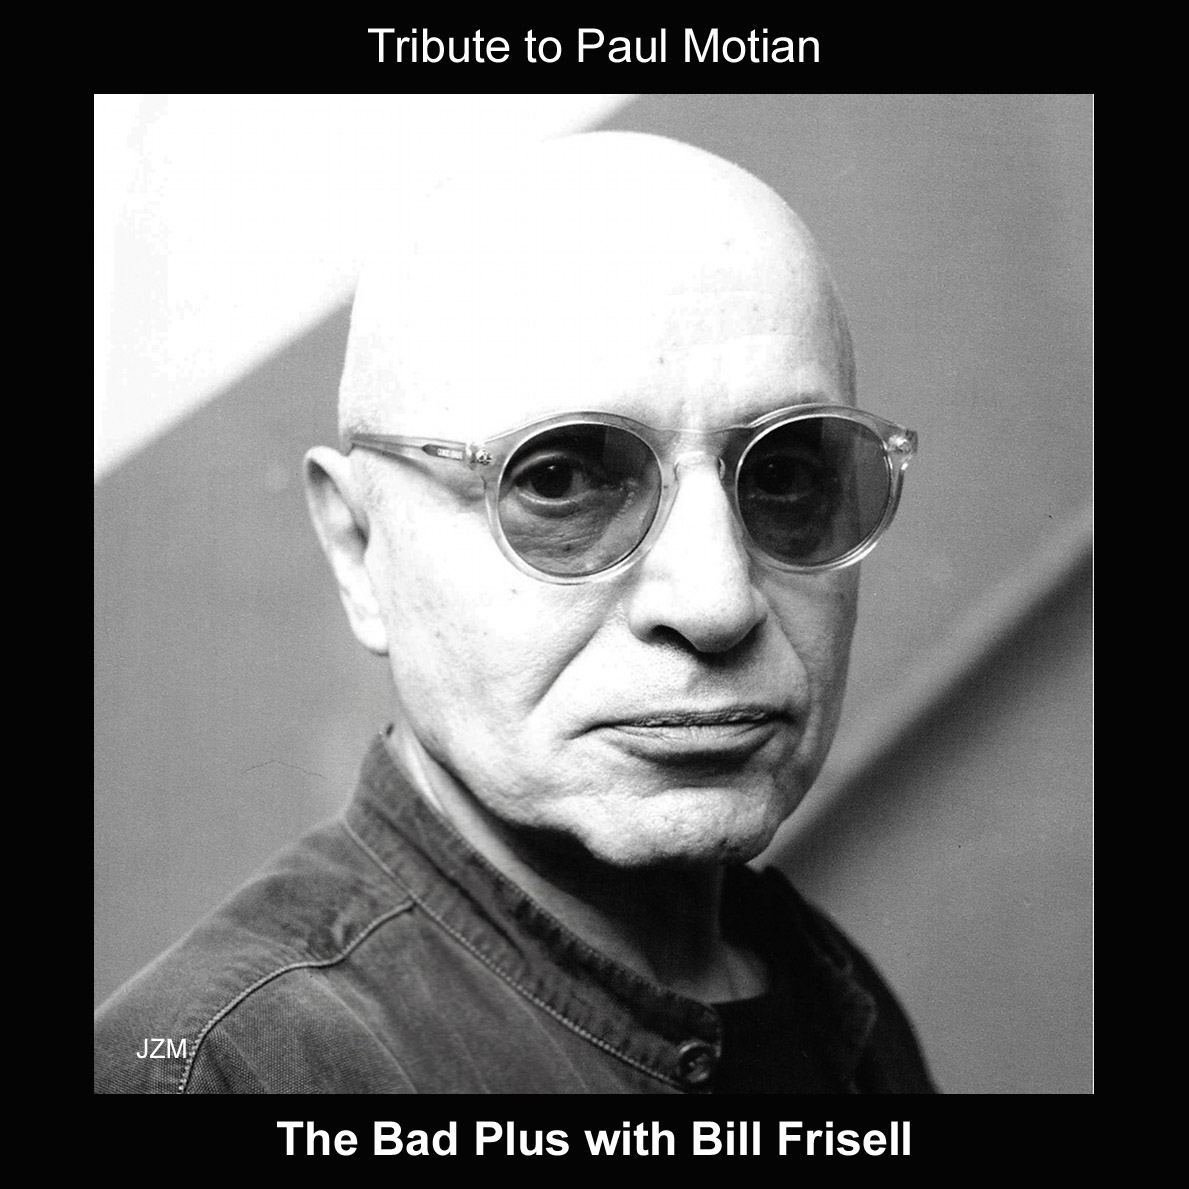 Ce que vous écoutez là tout de suite - Page 20 The+bad+plus+with+bill+frisell+tribute+to+paul+motian